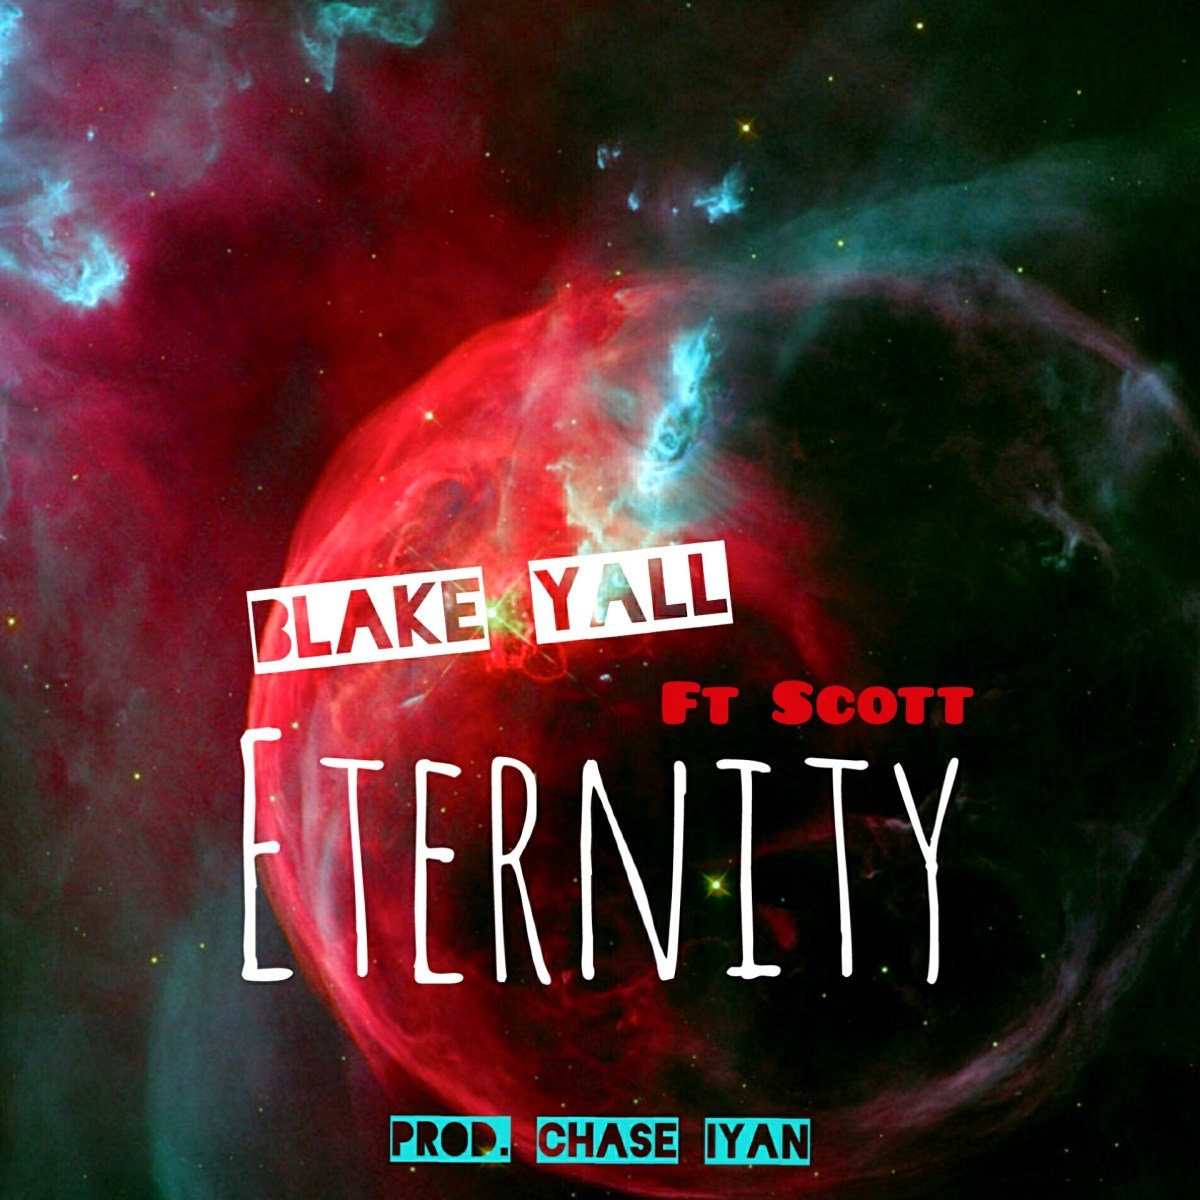 Blake Yall - Eternity ft Scott